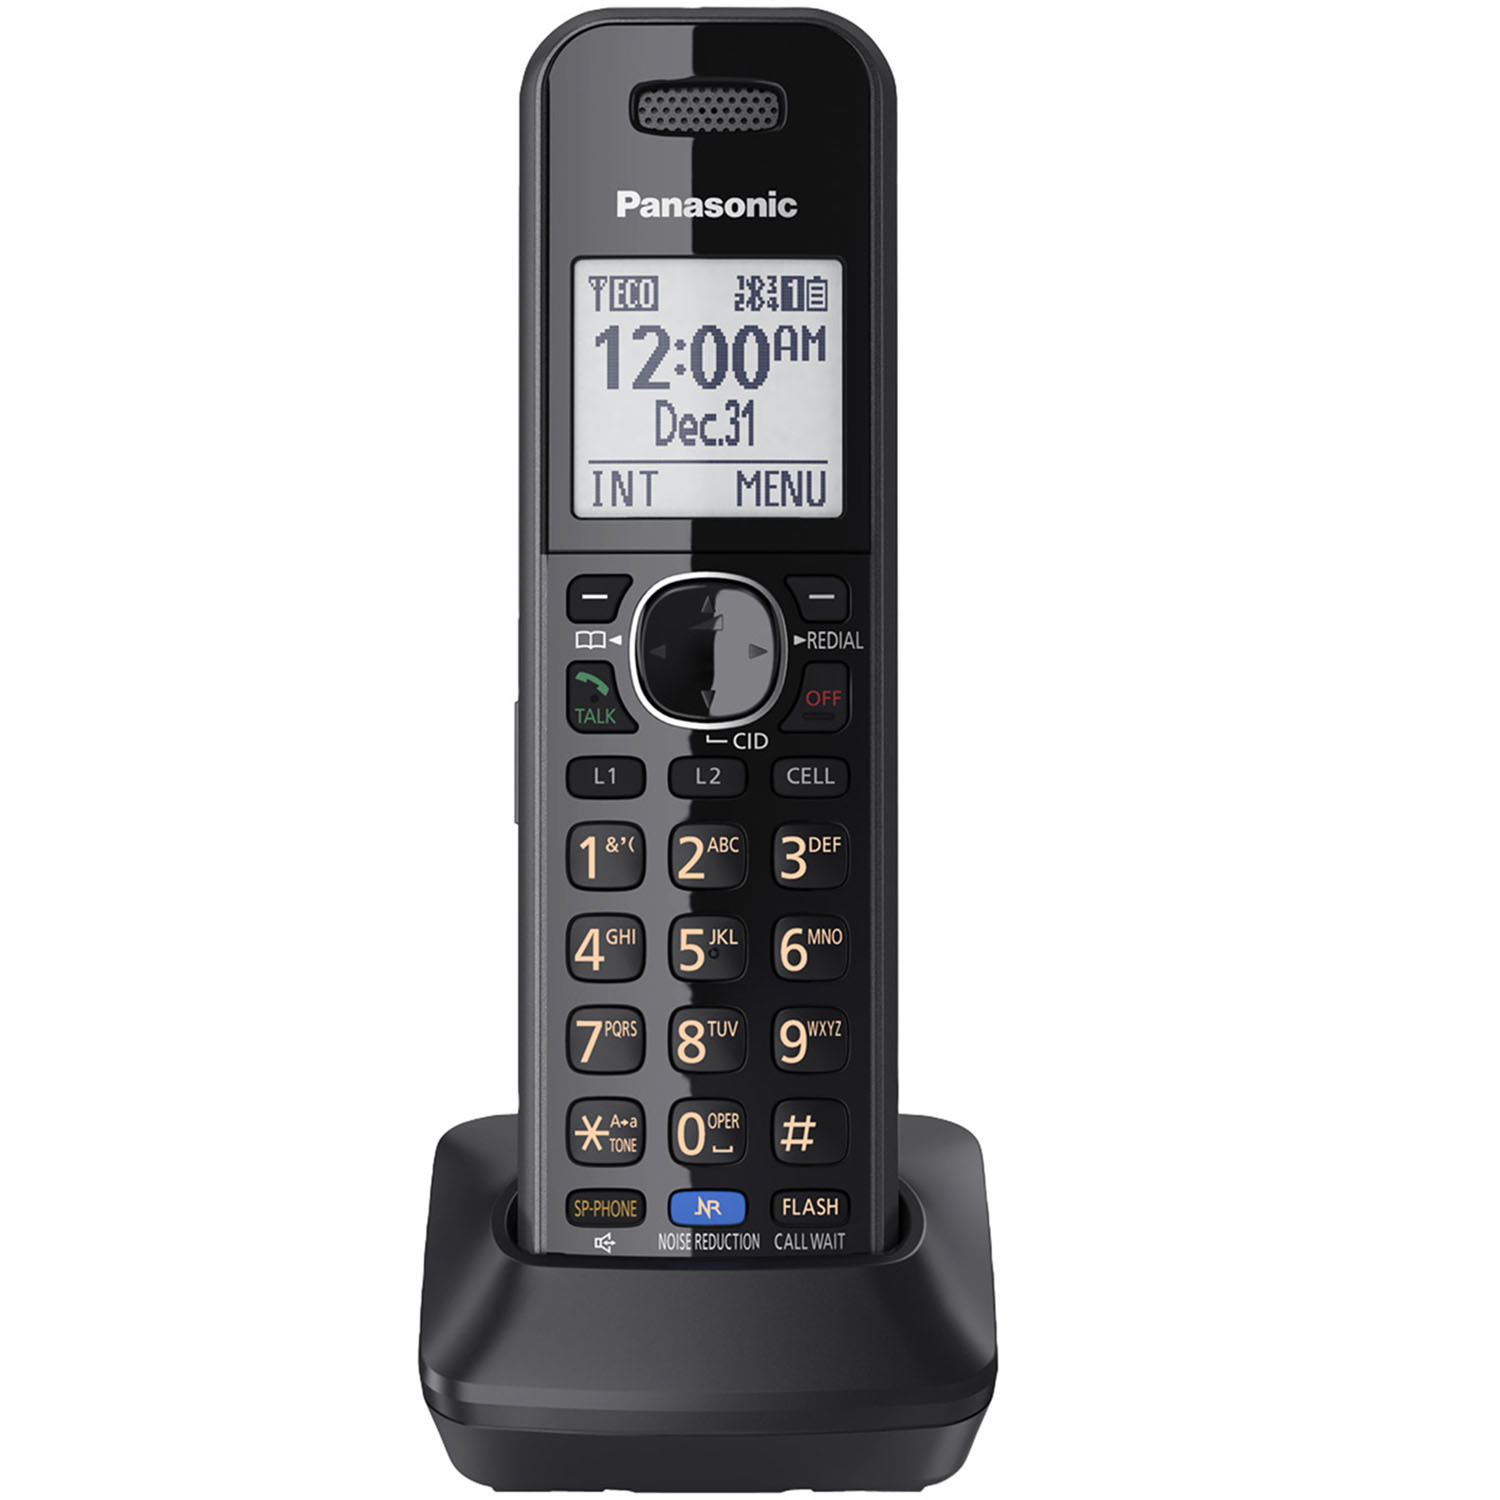 Panasonic Black Cordless Handset for Panasonic's 2-Line Link2Cell Convergence Solution